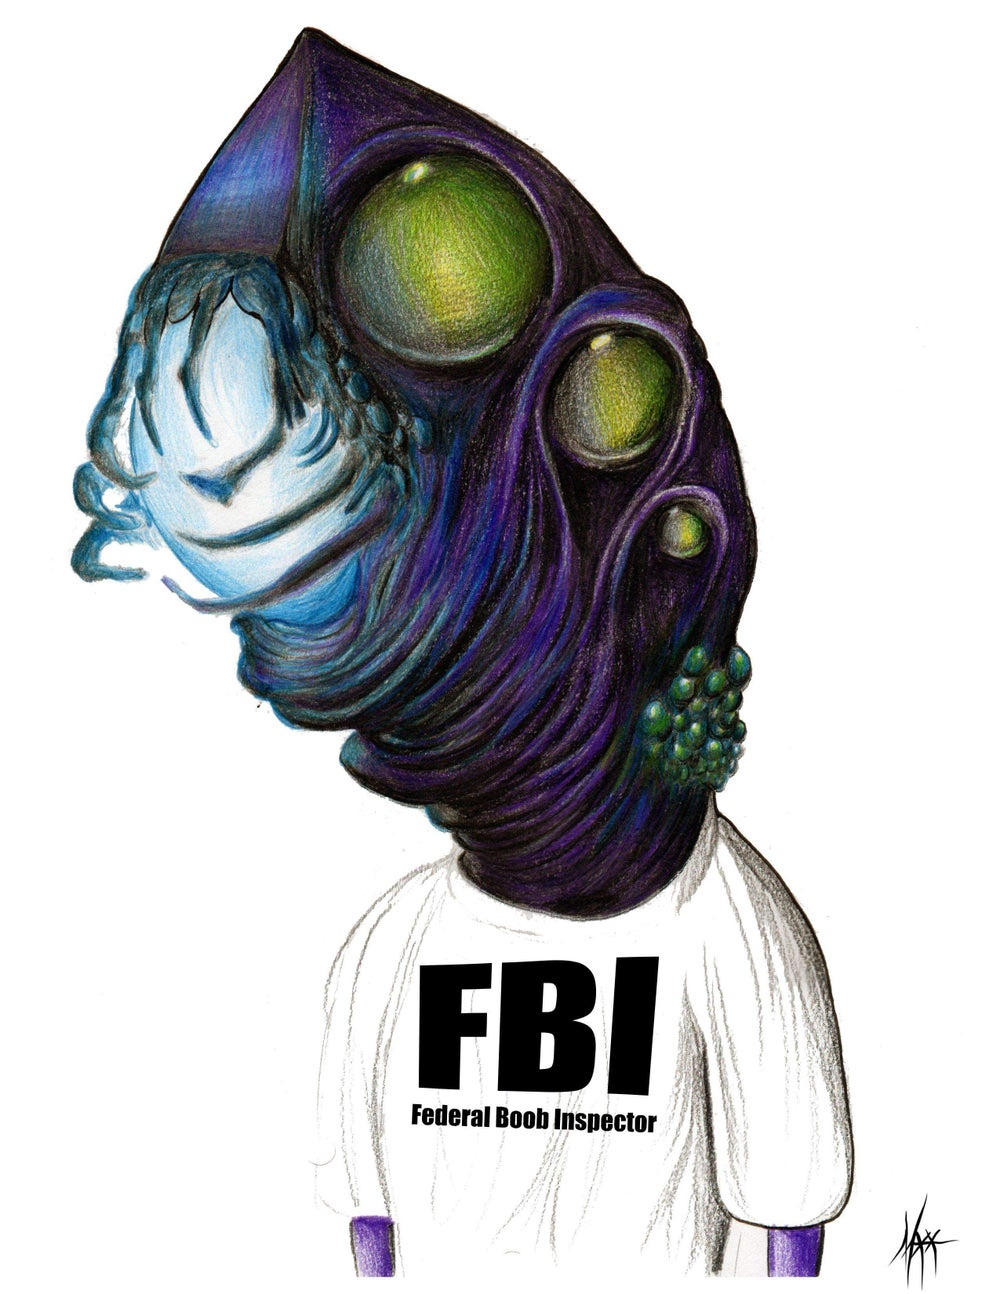 Image of Federal Boob Inspector